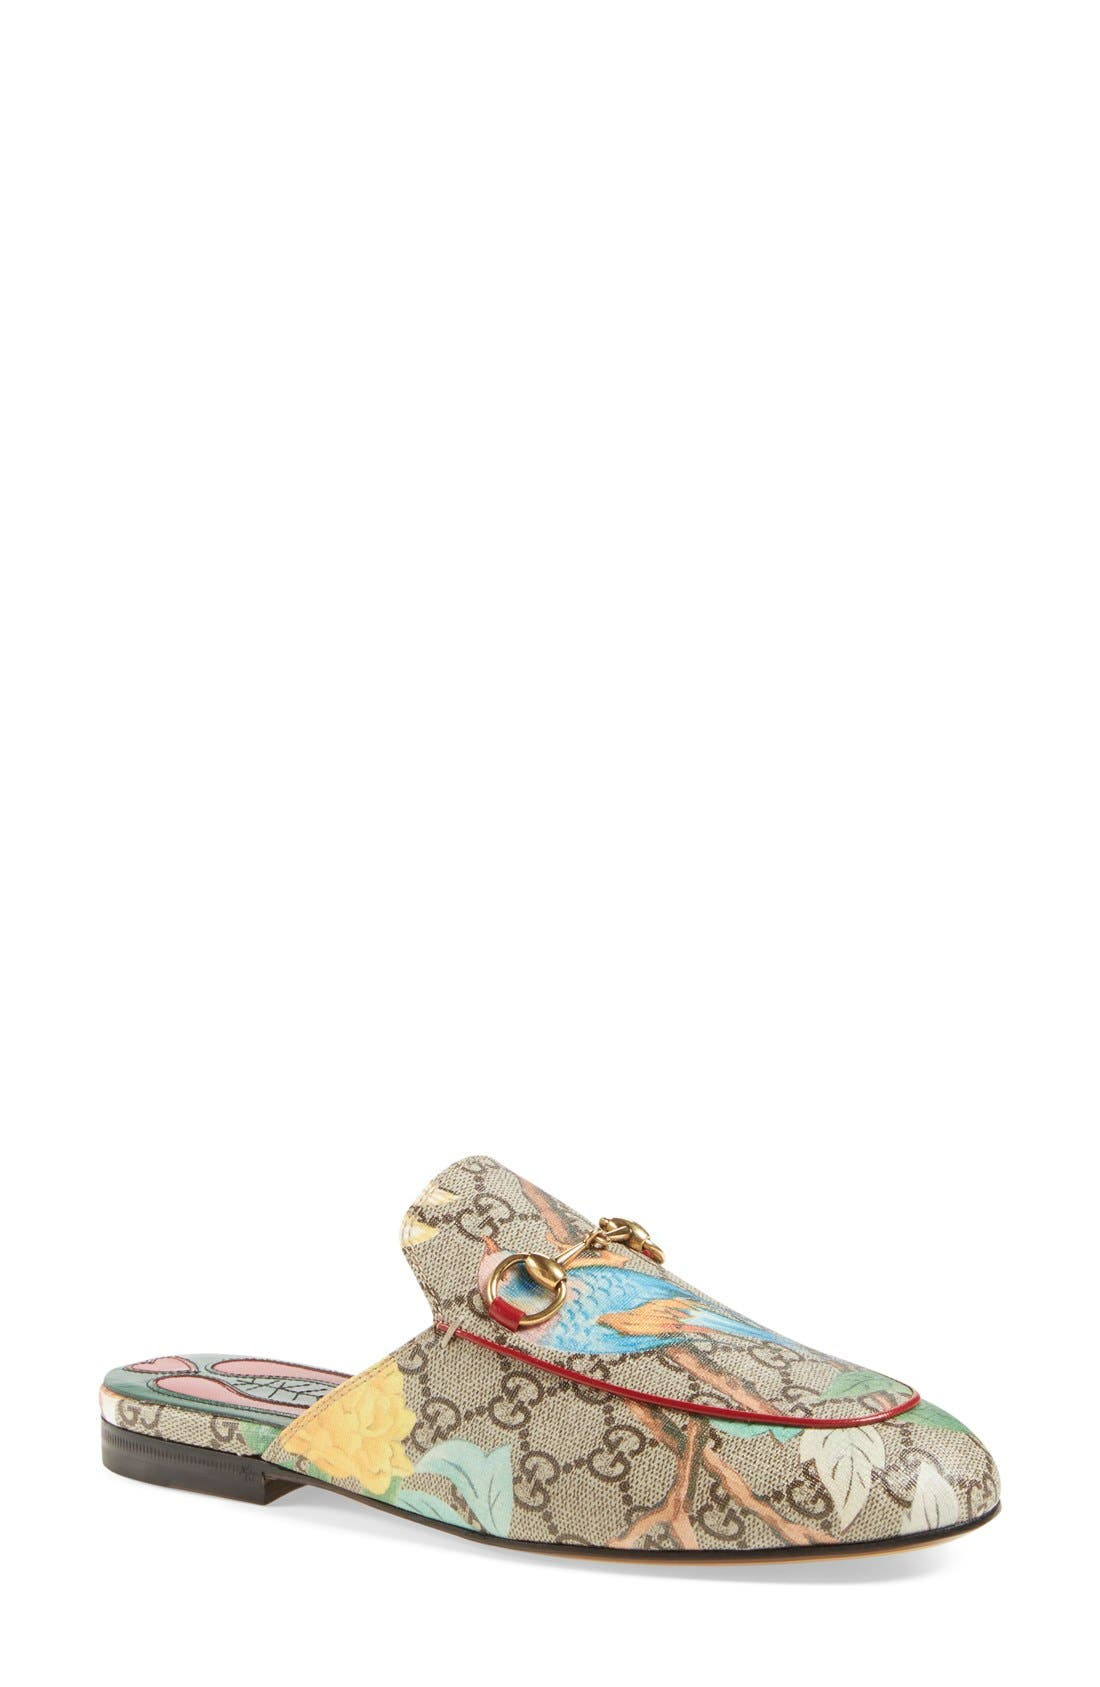 'Princetown' Floral Print Mule Loafer,                             Main thumbnail 1, color,